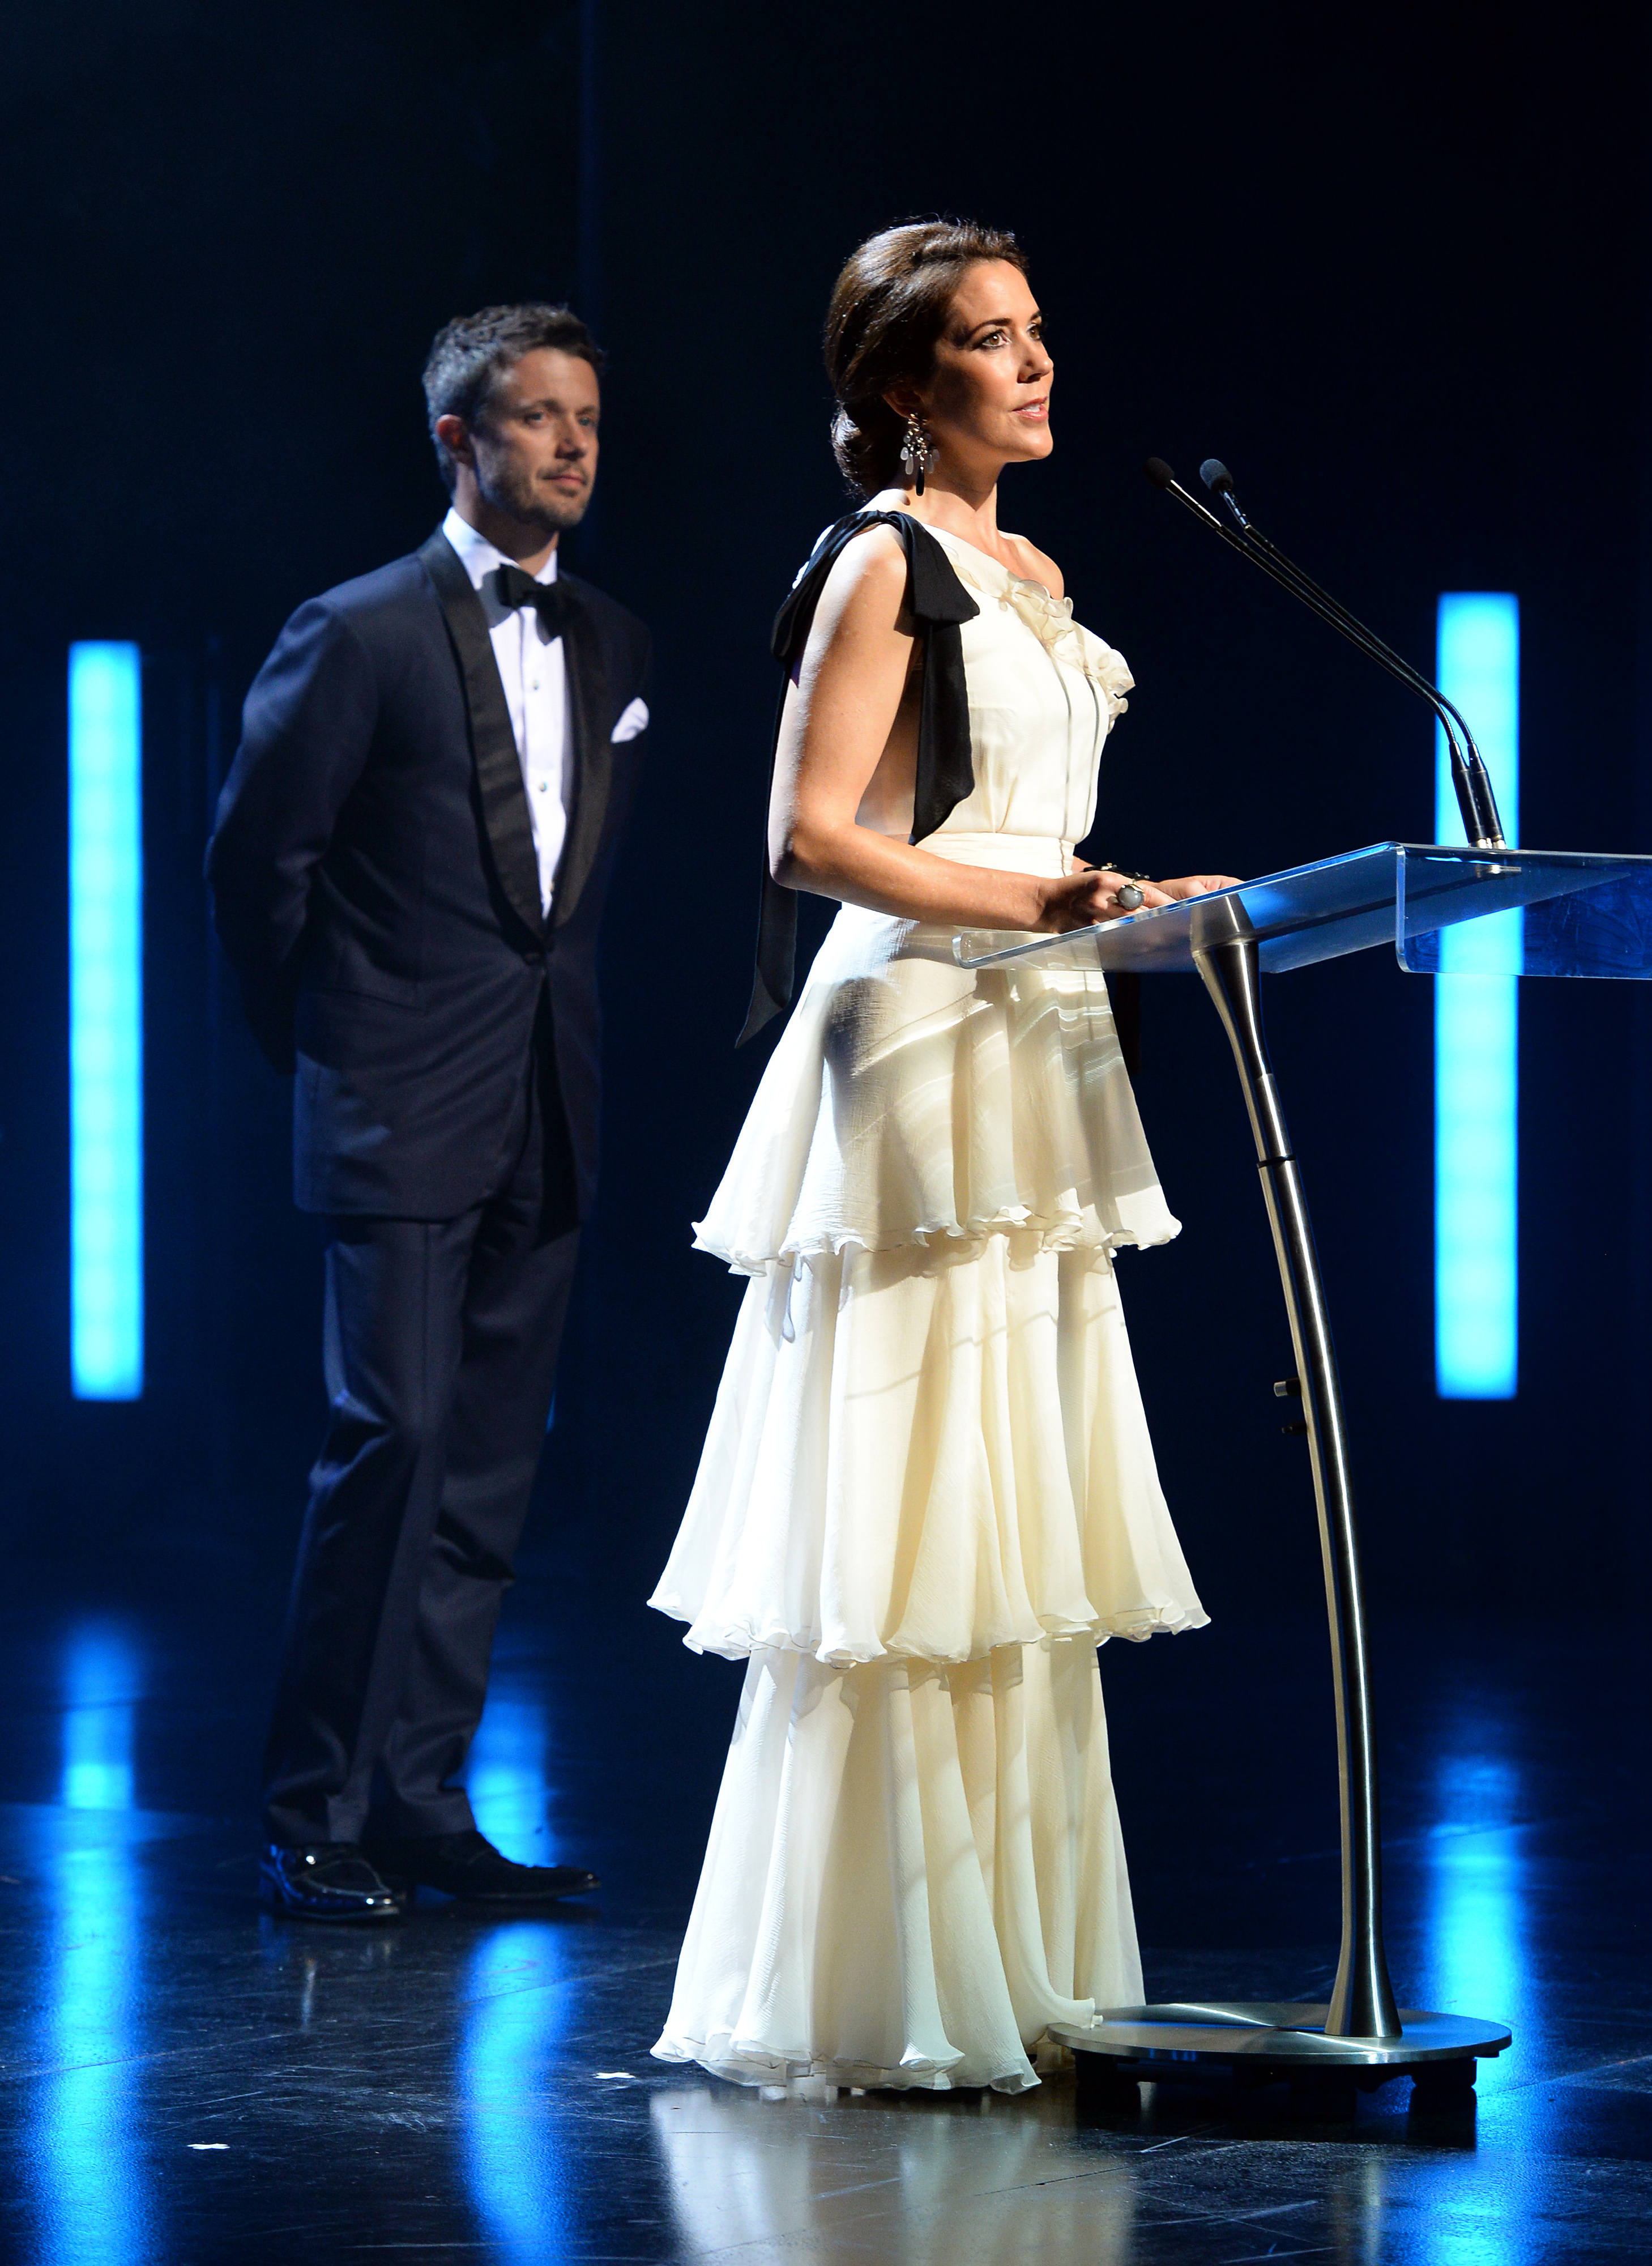 SYDNEY, AUSTRALIA - OCTOBER 28: Princess Mary of Denmark speaks at the Sydney Opera House as Prince Frederik of Denmark looks on as they attend the Crown Prince Couple Awards 2013 at Sydney Opera House on October 28, 2013 in Sydney, Australia. Prince Frederik and Princess Mary are on a five day visit to Sydney and will attend events to celebrate the 40th anniversary of the Sydney Opera House and the Danish architect who designed the landmark, Jorn Utzen. (Photo by William West - Pool/Getty Images)